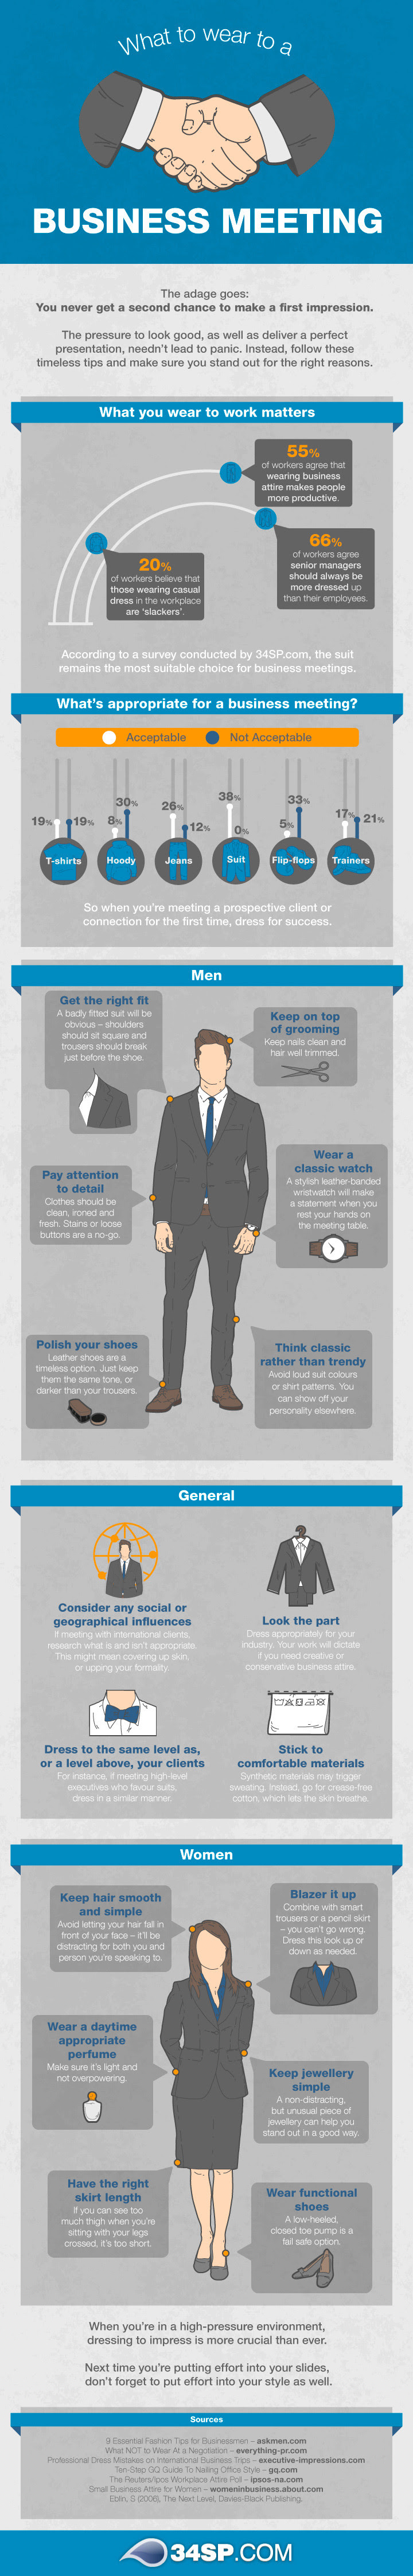 Infographic: What To Wear To A Business Meeting